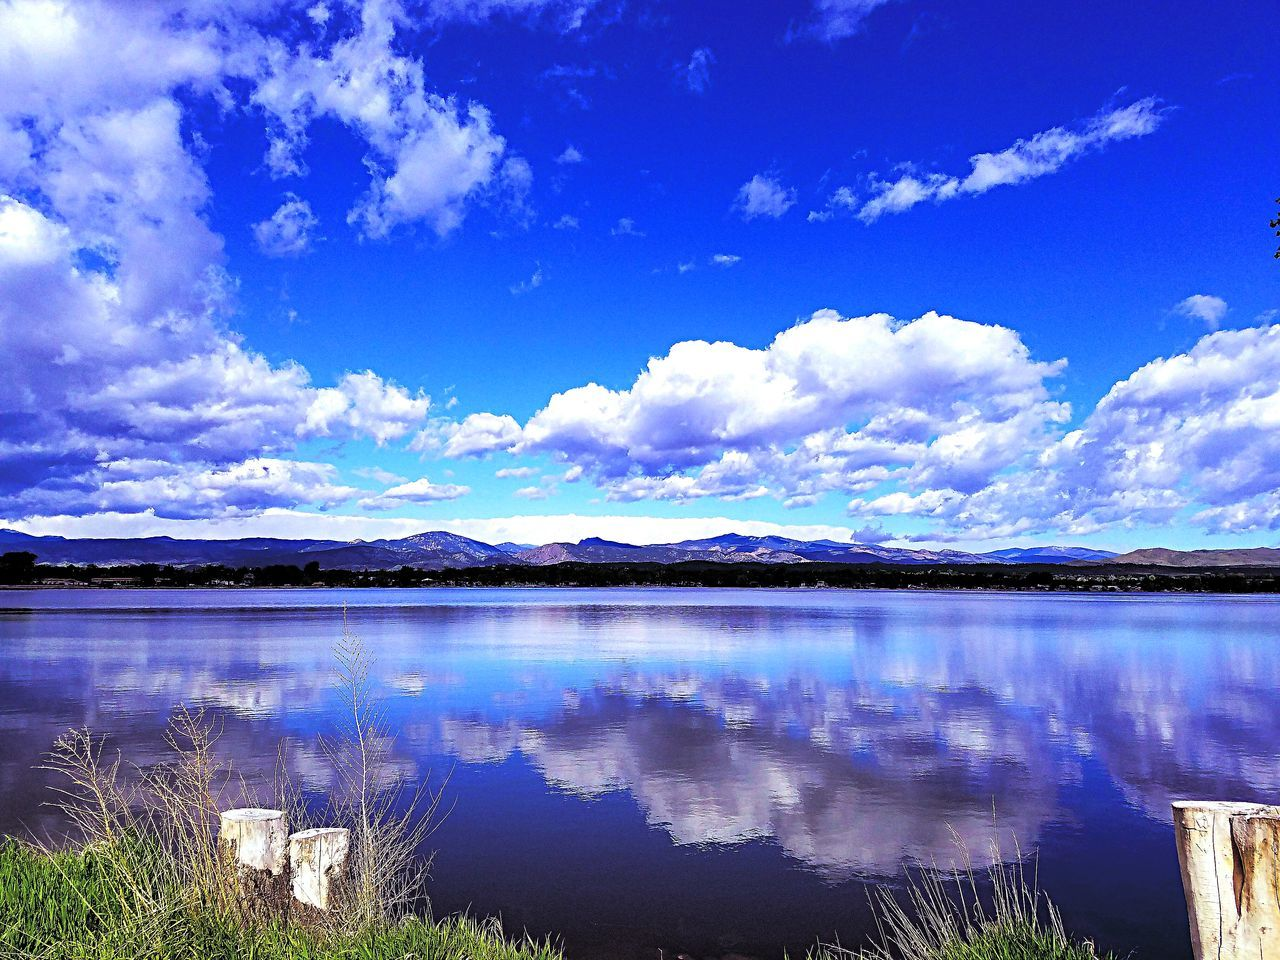 sky, scenics, reflection, tranquil scene, beauty in nature, tranquility, nature, cloud - sky, water, lake, no people, blue, outdoors, day, landscape, mountain, grass